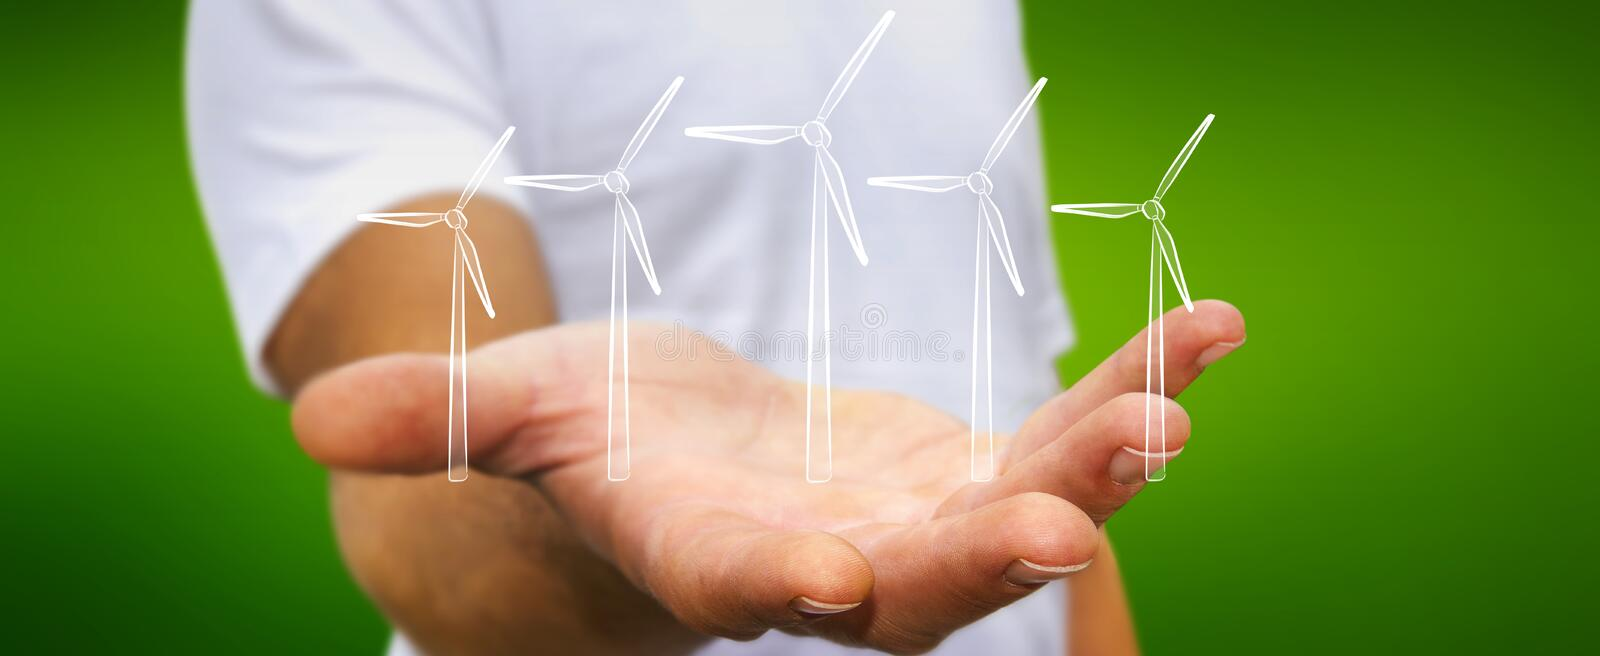 Download Businessman Holding Renewable Energy Sketch Stock Image - Image of power, pollution: 94909257